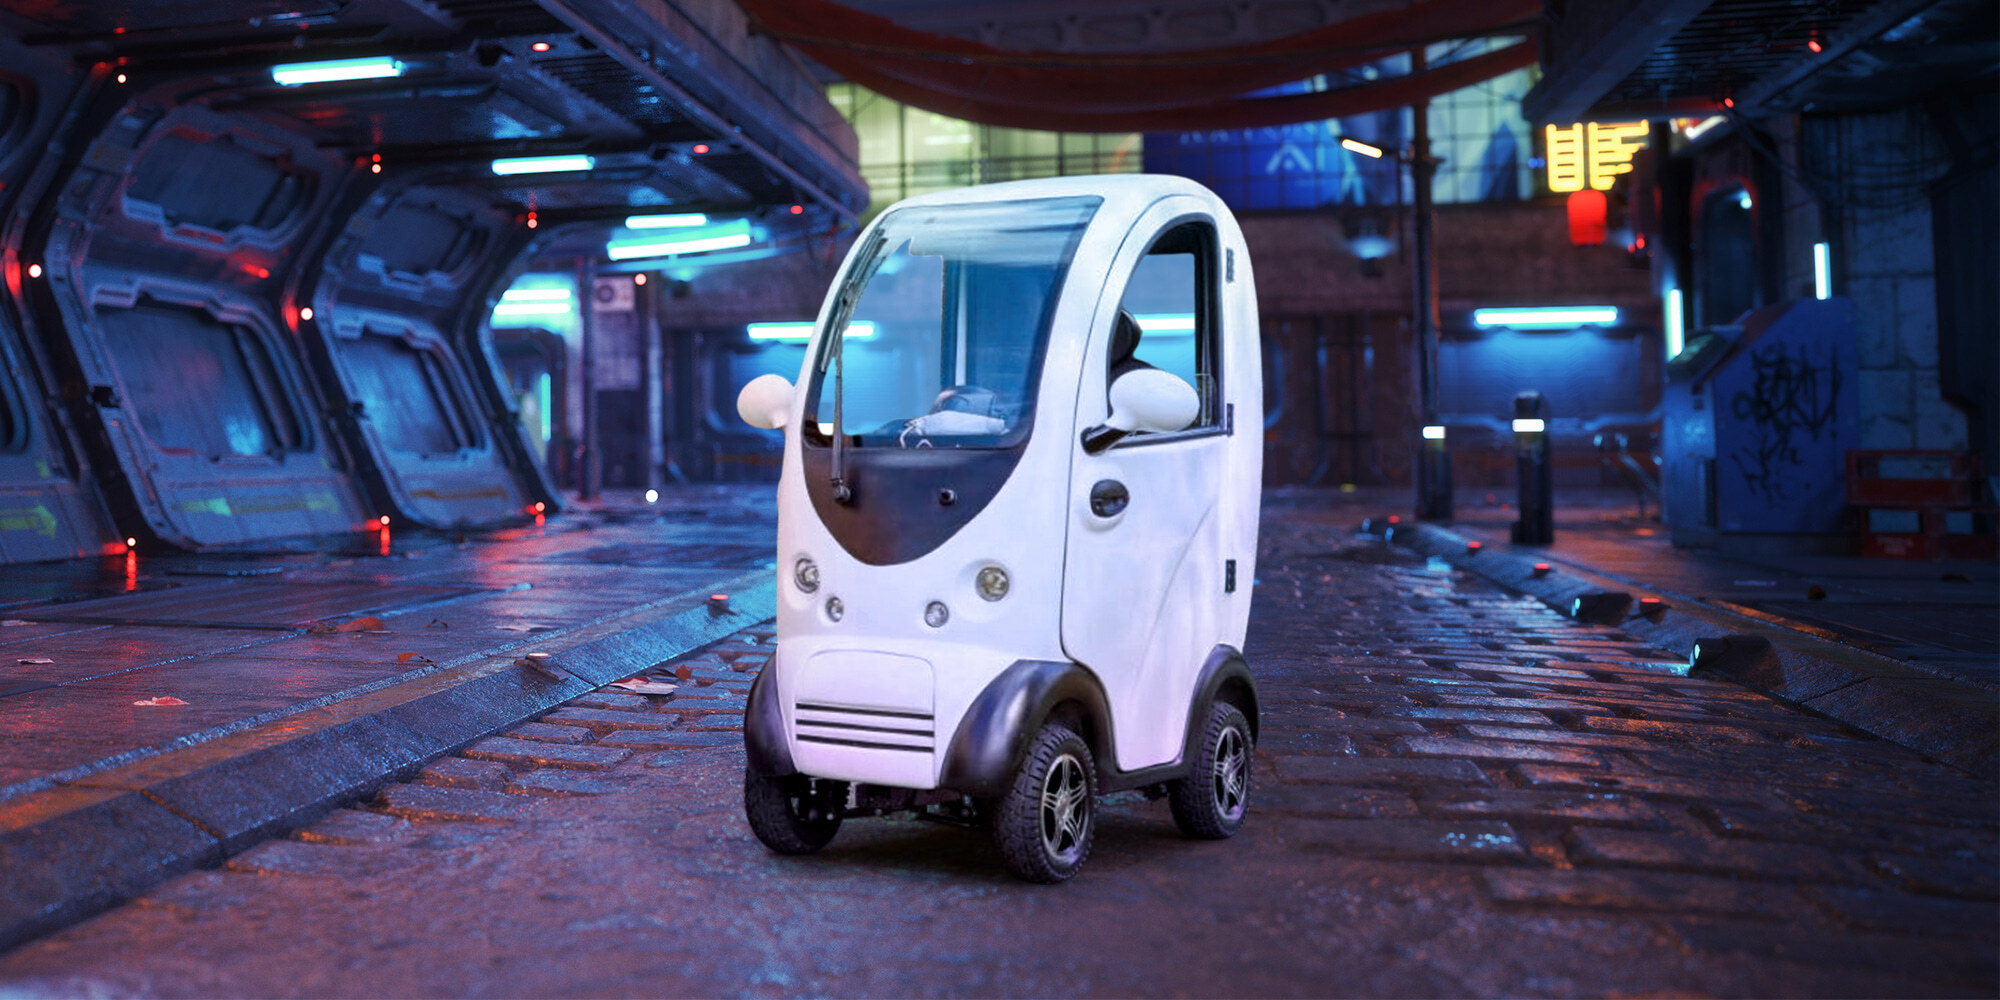 Awesomely Weird Alibaba Electric Vehicle of the Week: Tiny One-Seater  Electric Car - Electrek